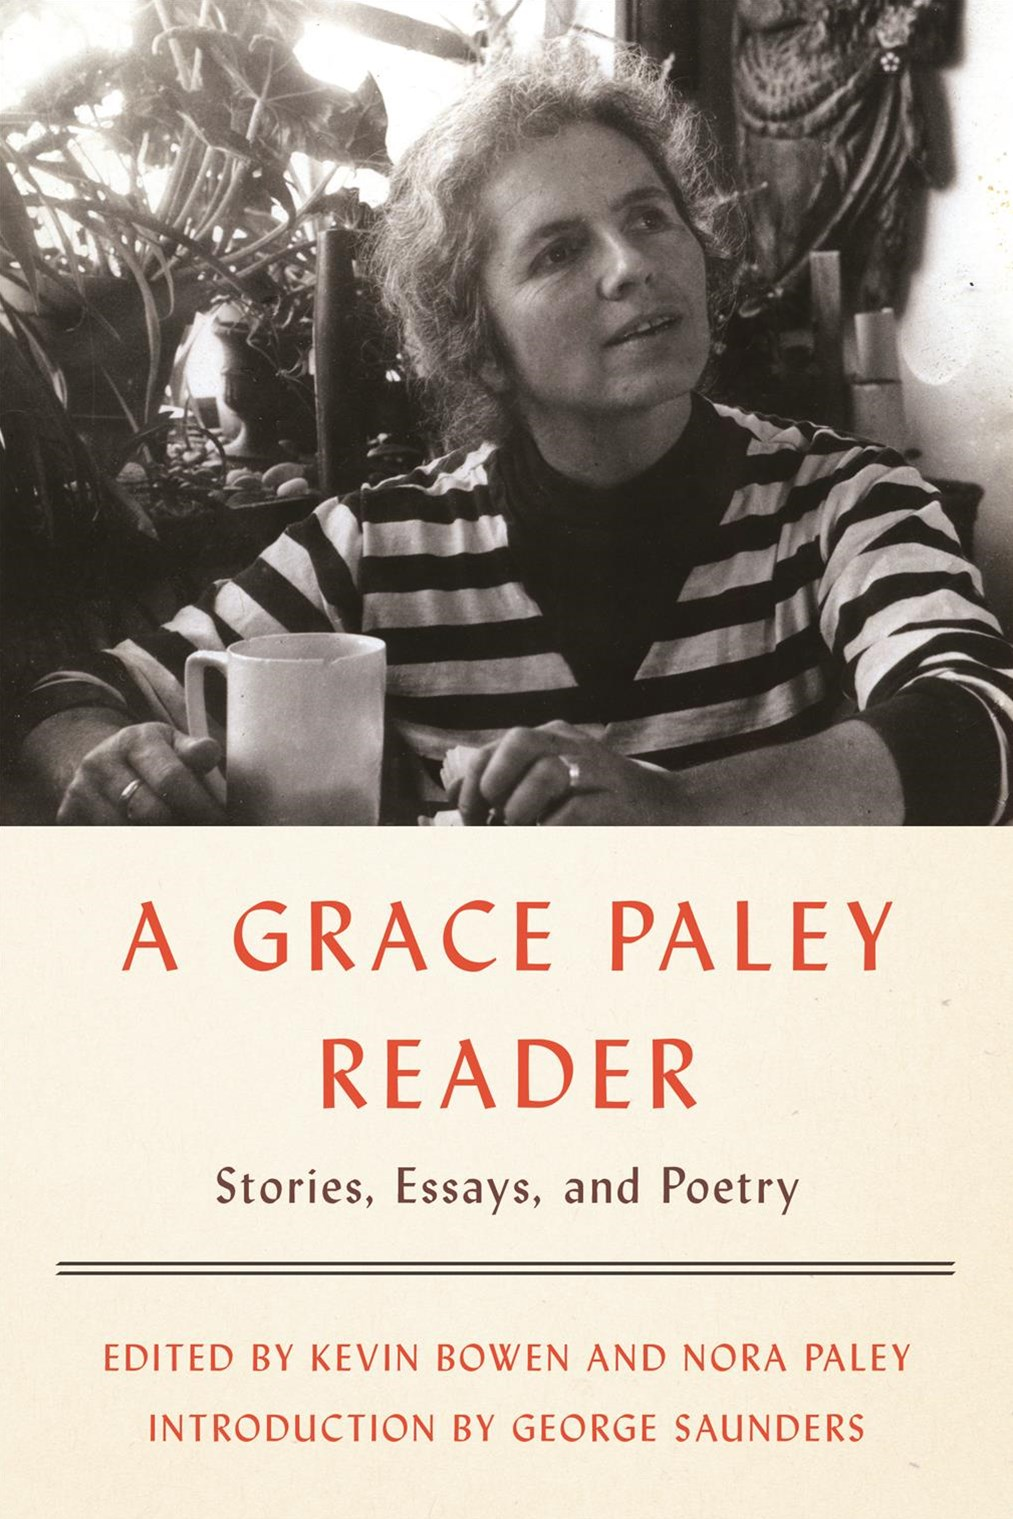 A Grace Paley Reader